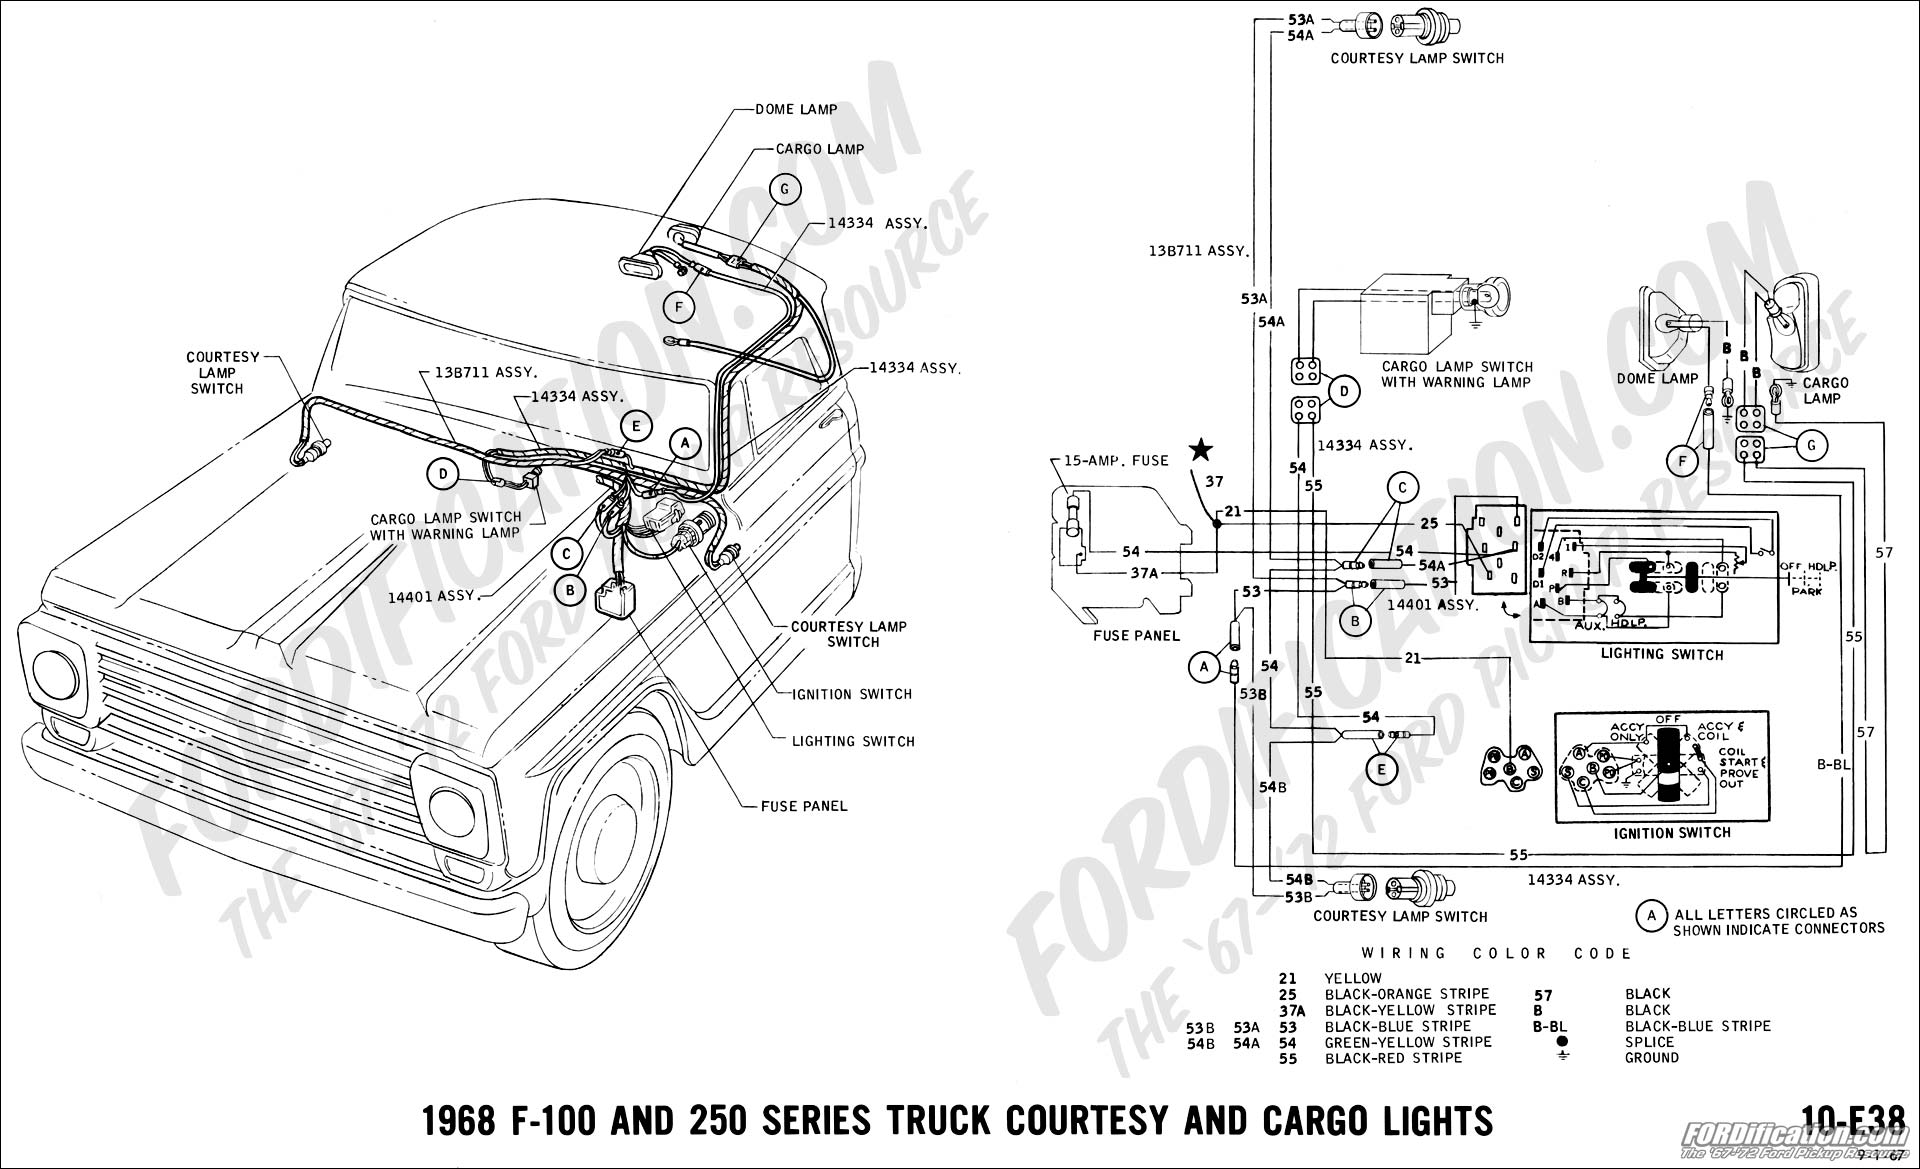 68 40 ford truck technical drawings and schematics section h wiring truck camper wiring diagram at arjmand.co